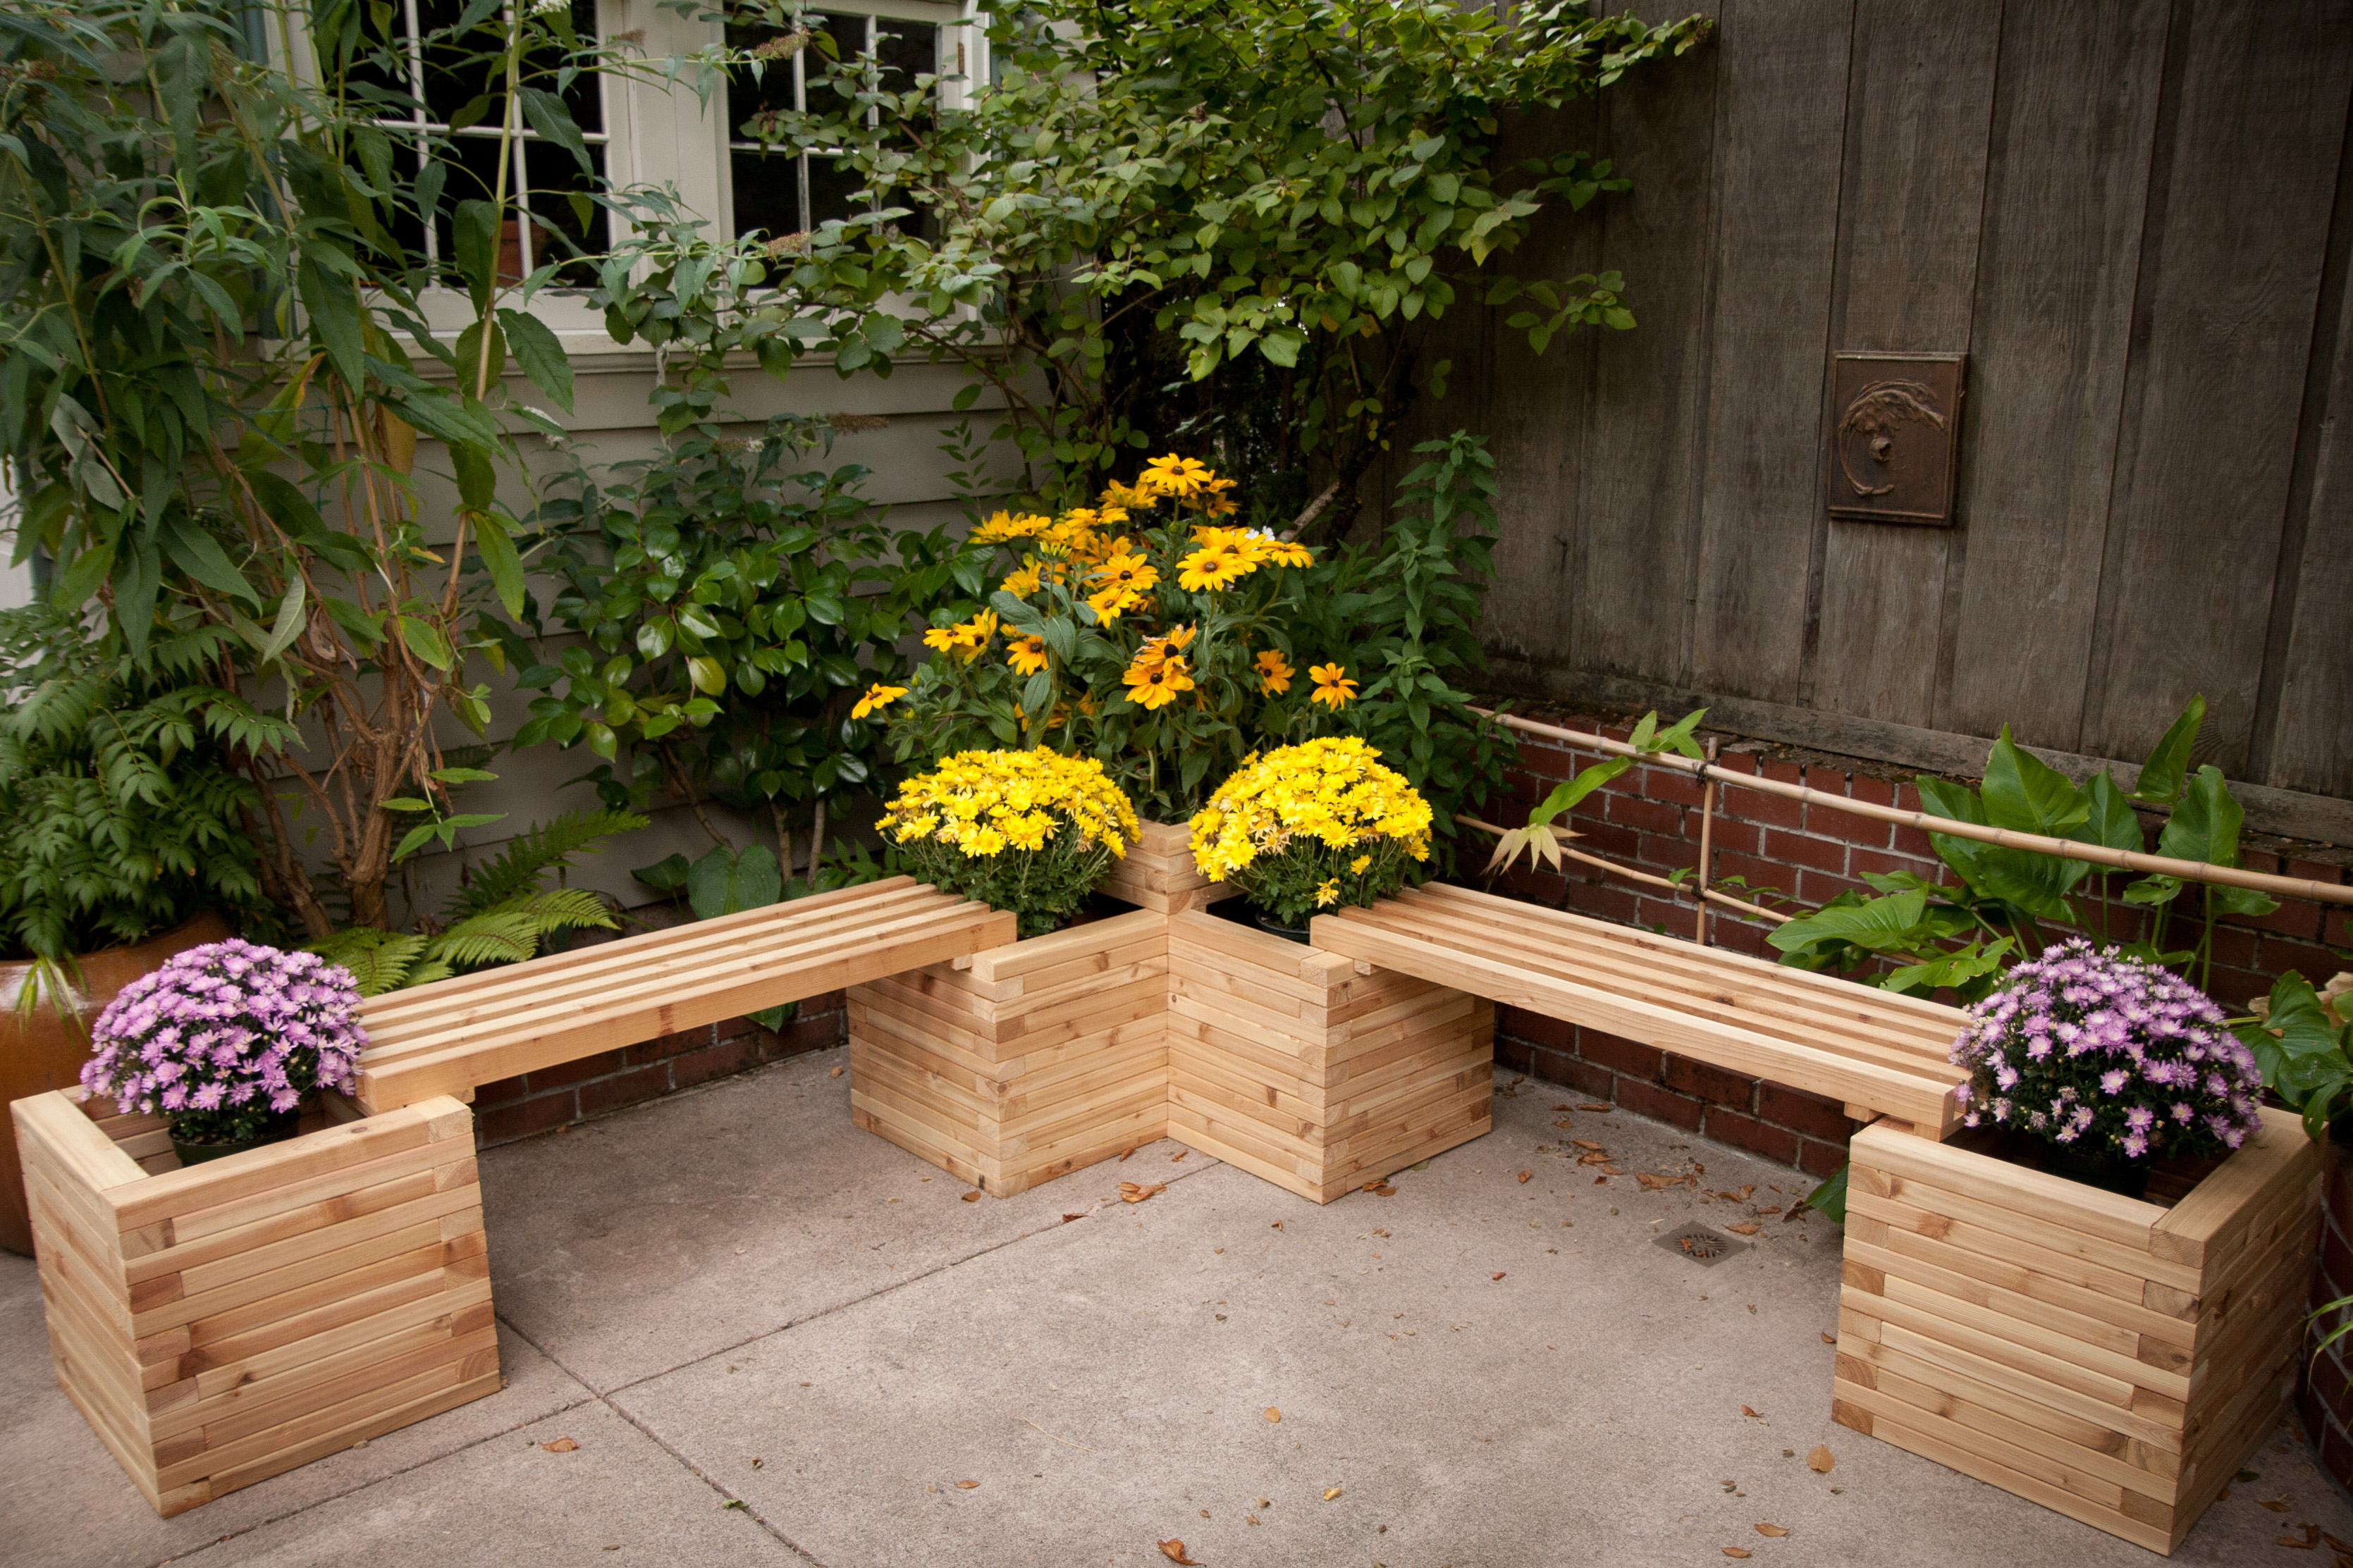 Bank Aus Holz Diy Corner Planters Perfect For Small Gardens